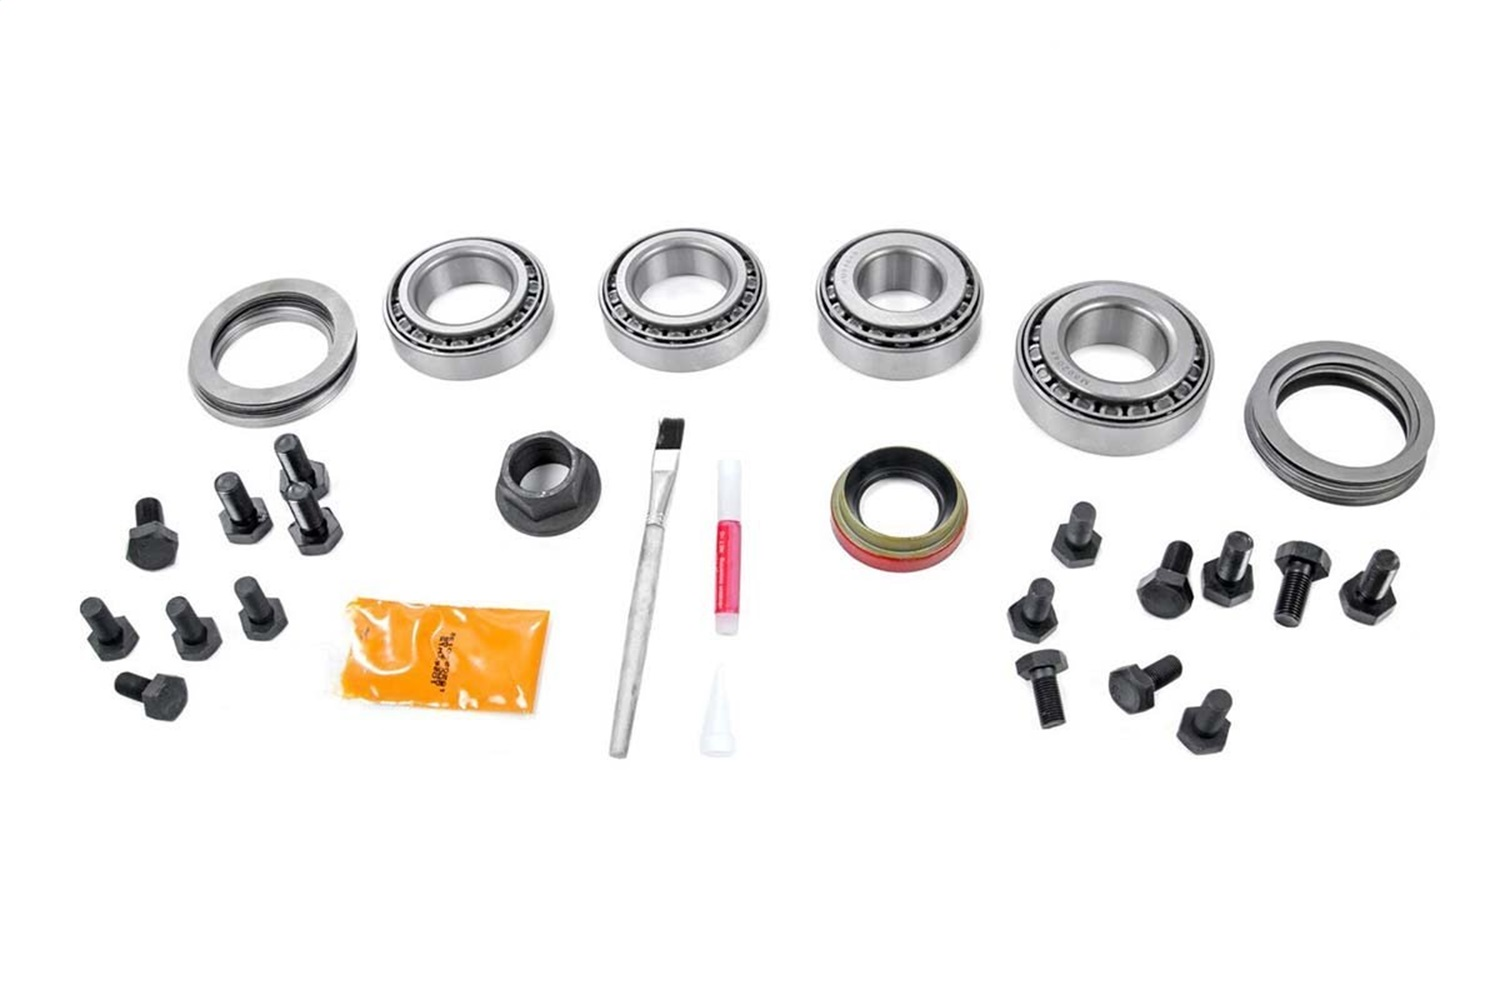 Rough Country 535000335 Ring And Pinion Master Install Kit